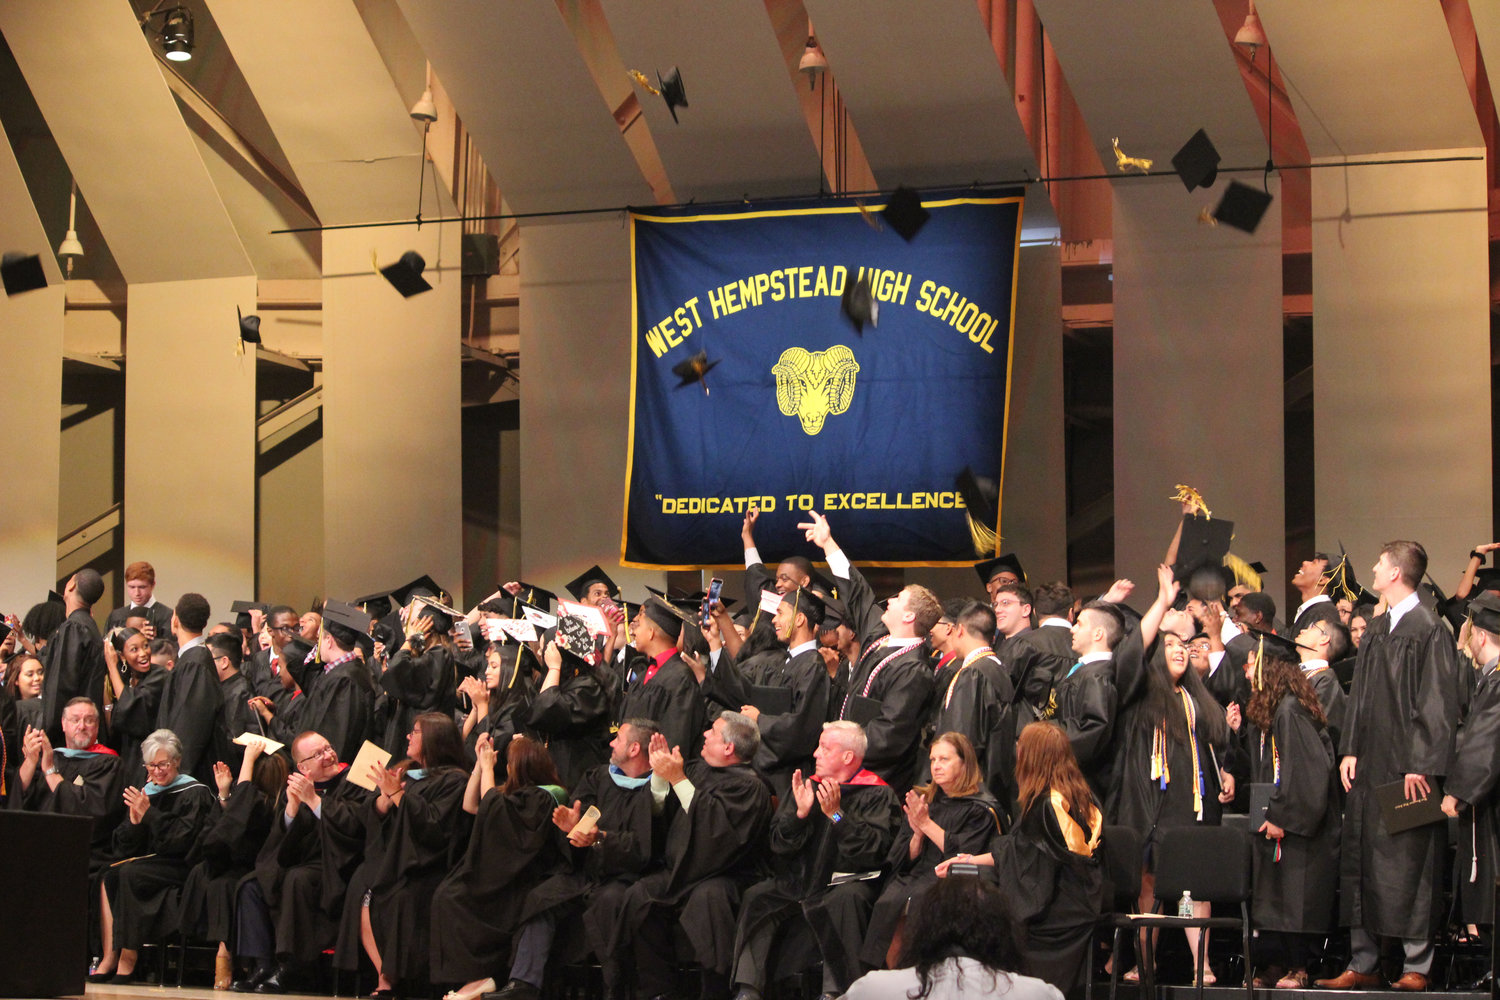 West Hempstead High School's class of 2019 tossed their mortarboards in the air during the end of their graduation ceremony at LIU Post last Sunday.